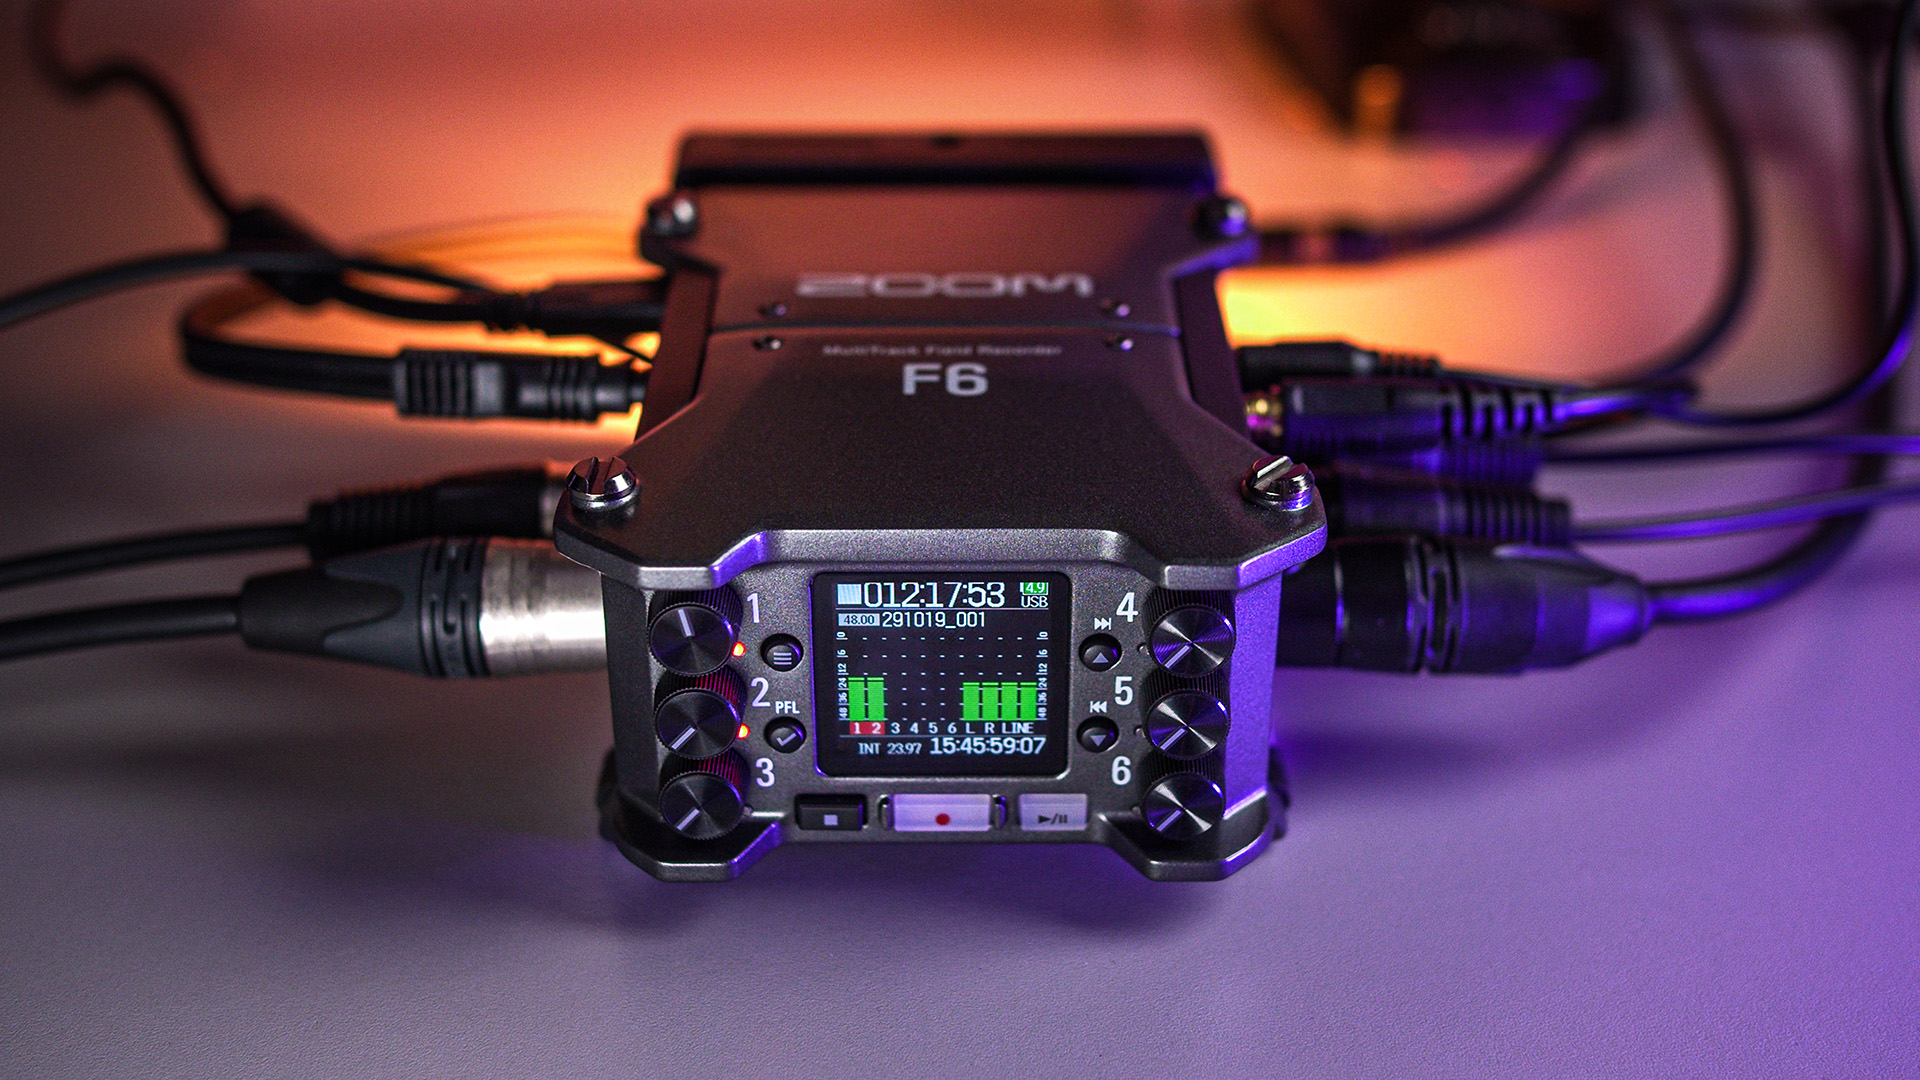 Zoom F6 - Can It Do Everything?